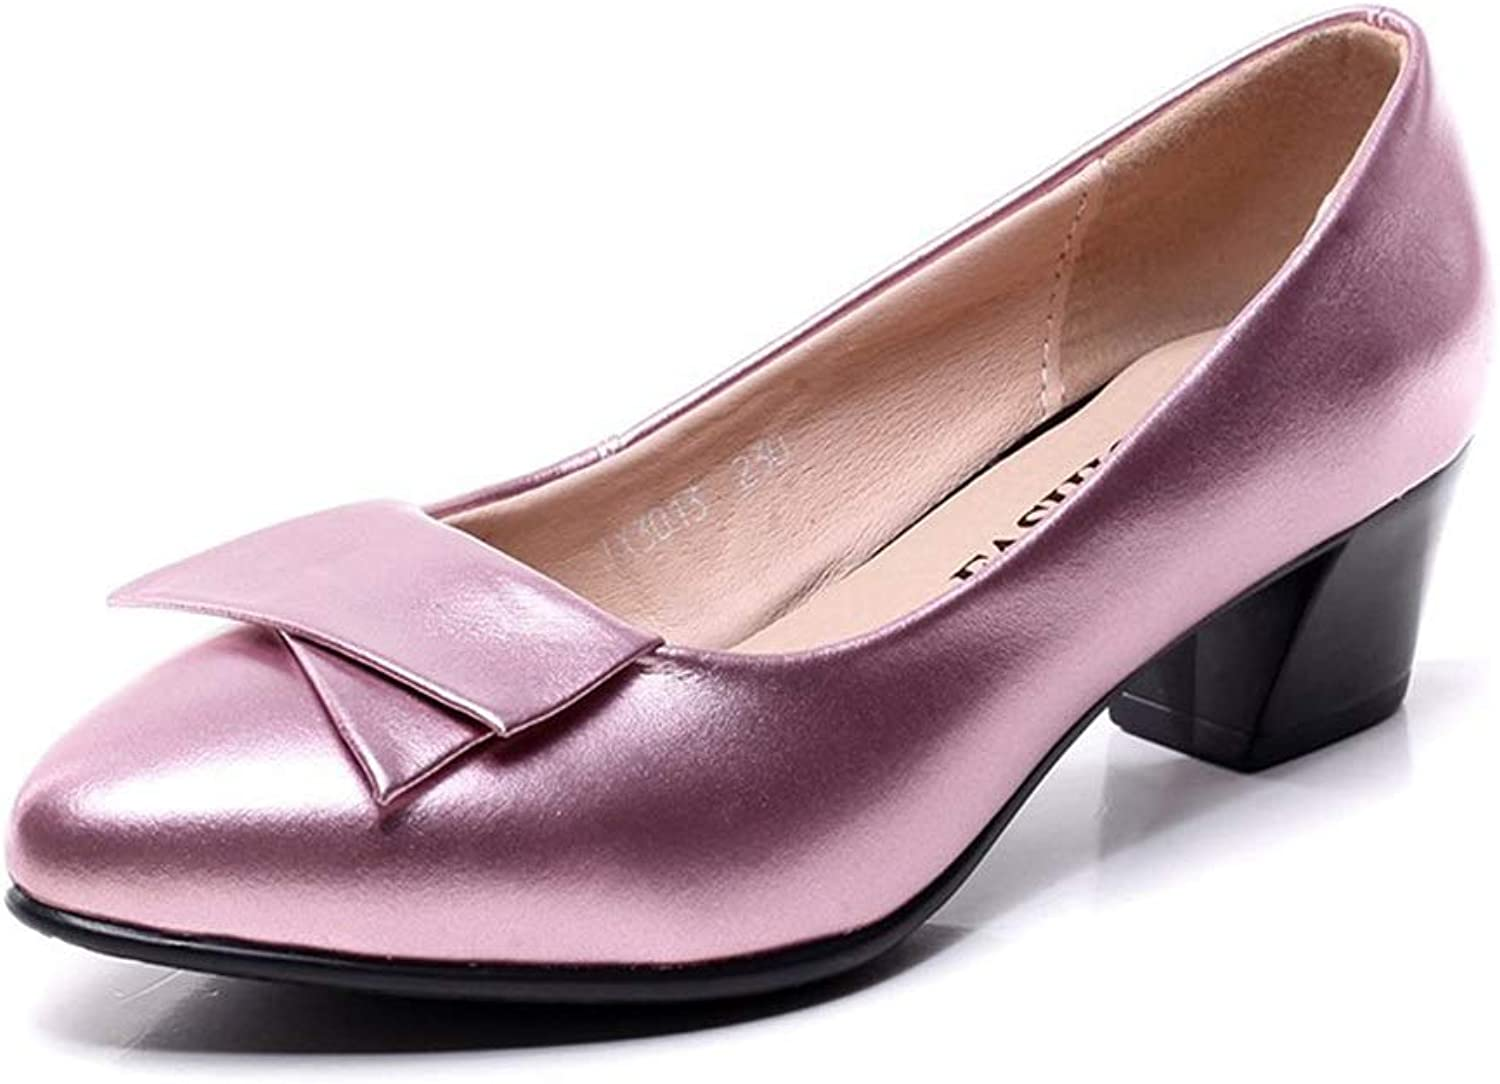 Large Size shoes Dress Professional Women's shoes Fashion Pointed Shallow Mouth Thick with Flat Work shoes in The Low-Heeled Work Leather shoes (color   Pink, Size   37)